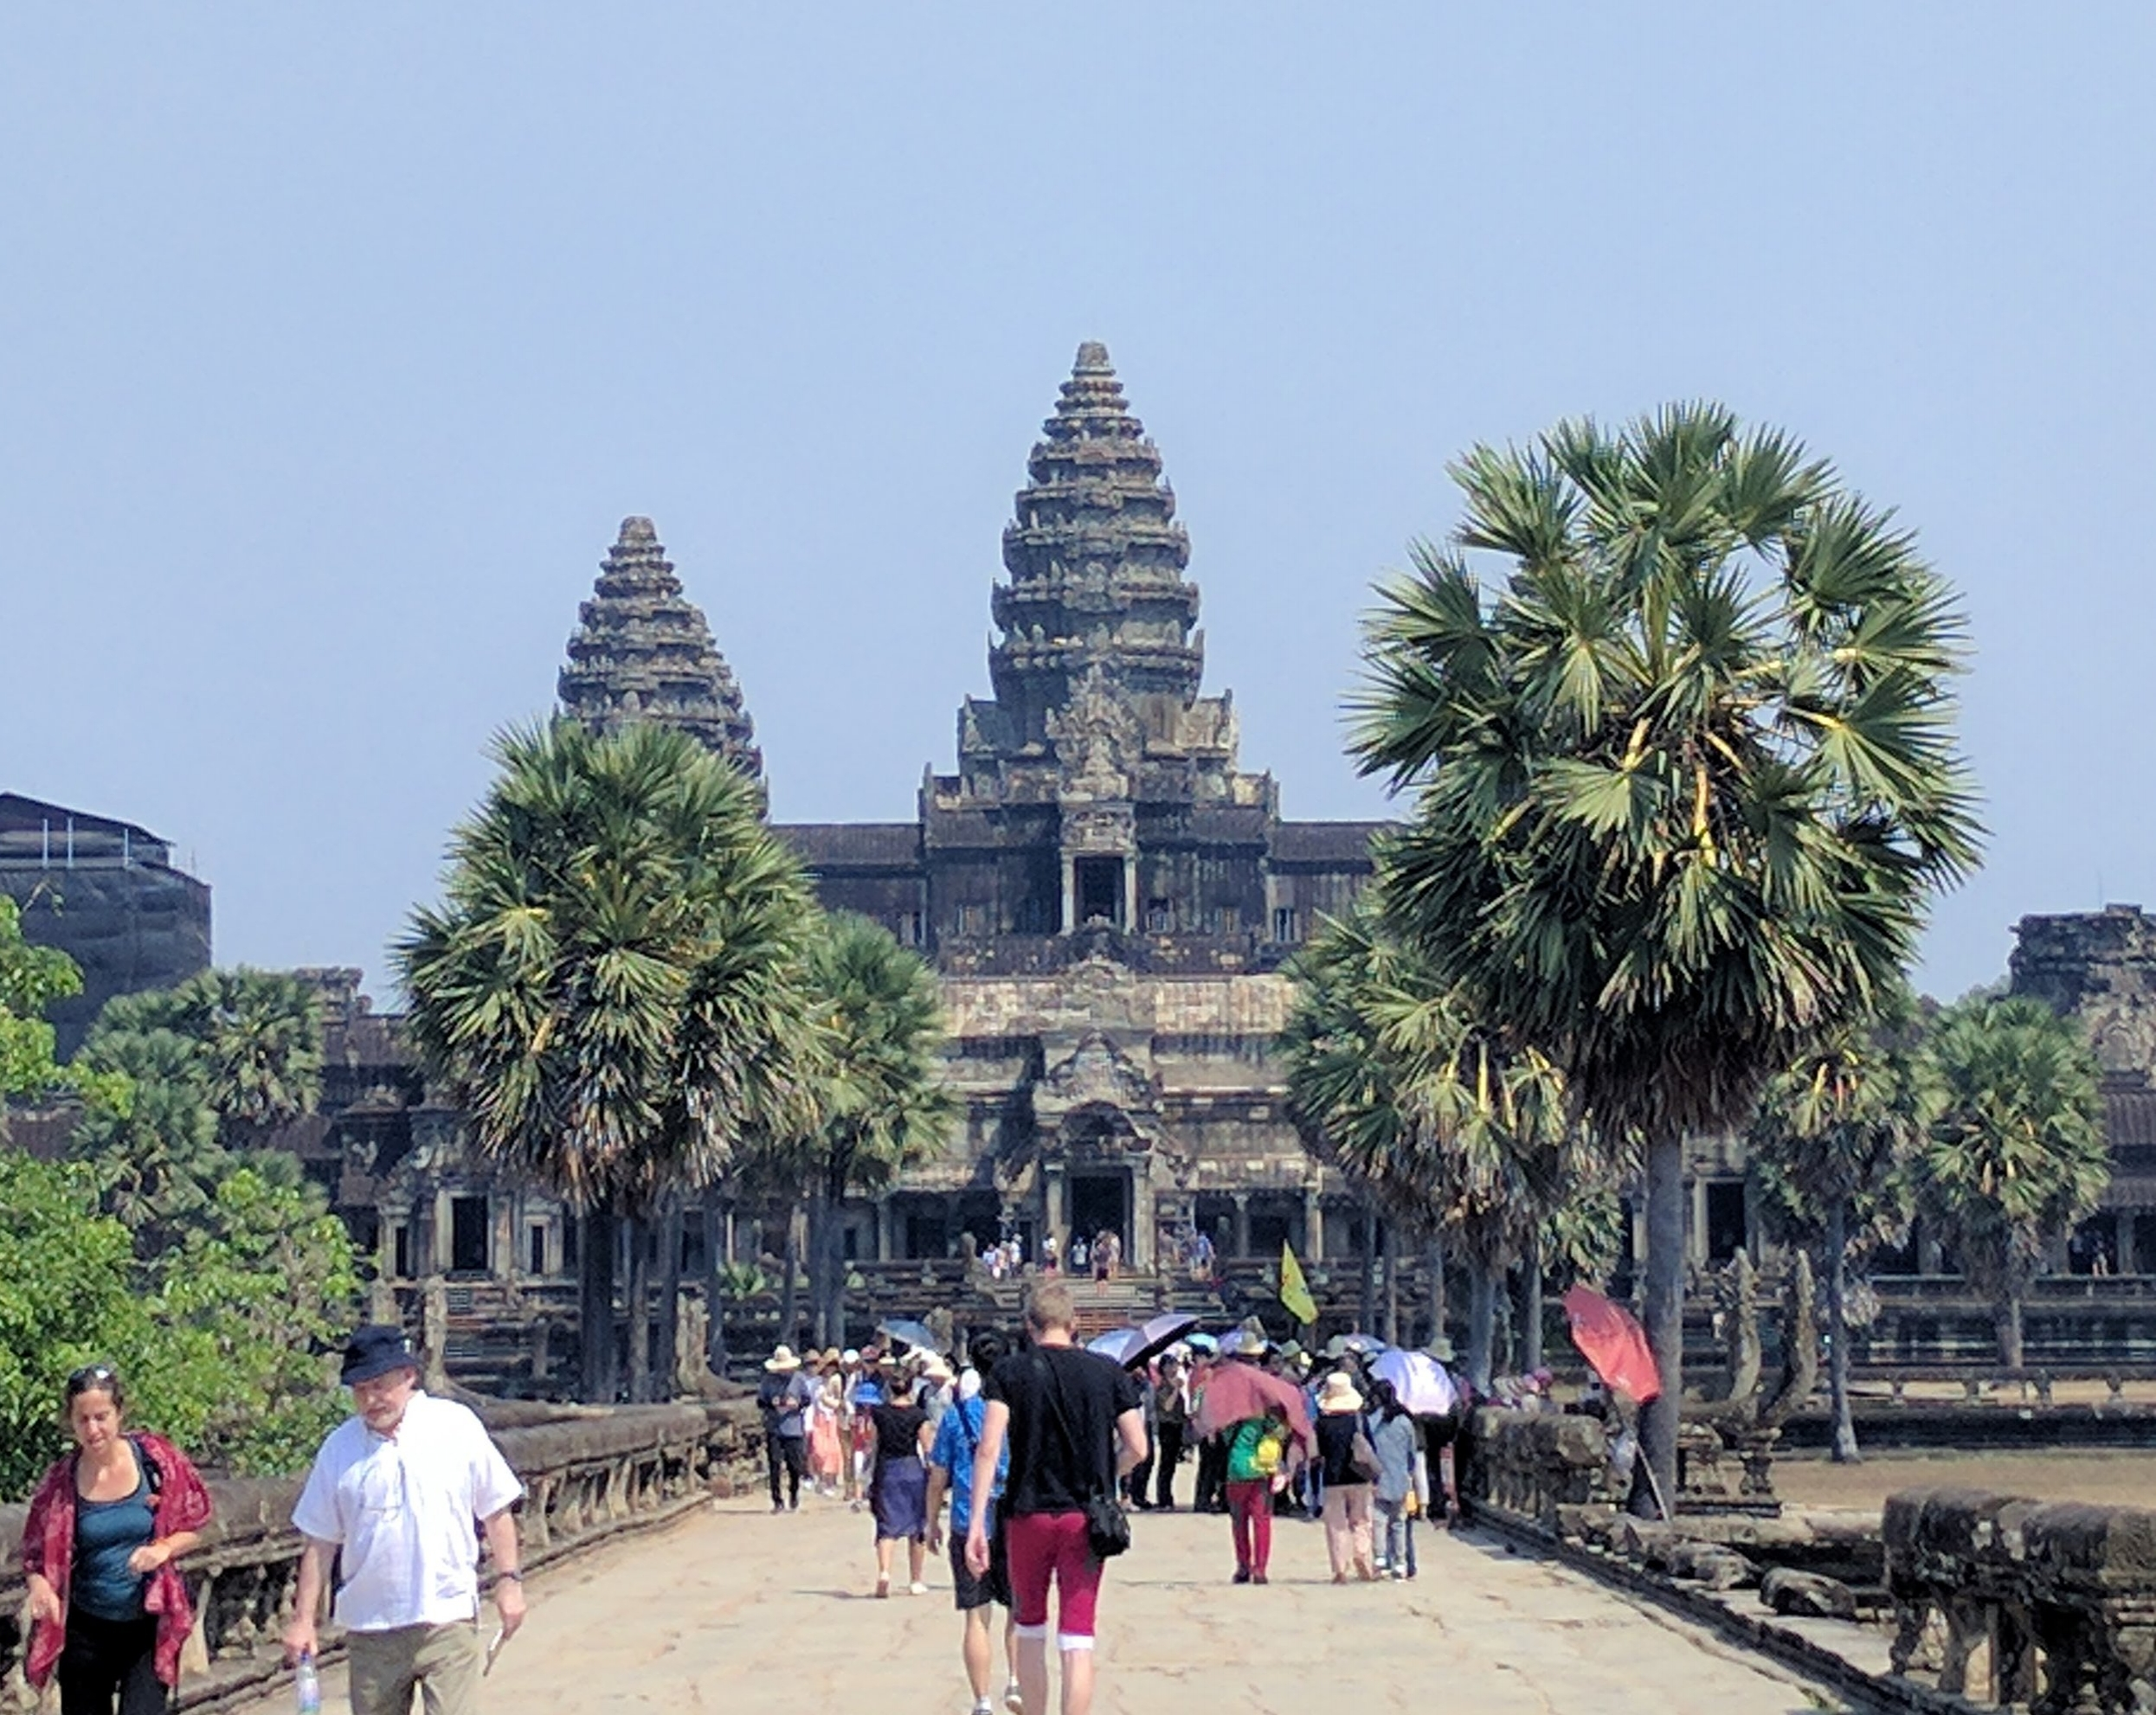 The view of Angkor Wat....once you get through the fascinating outer gate. There were always a ton of people there!